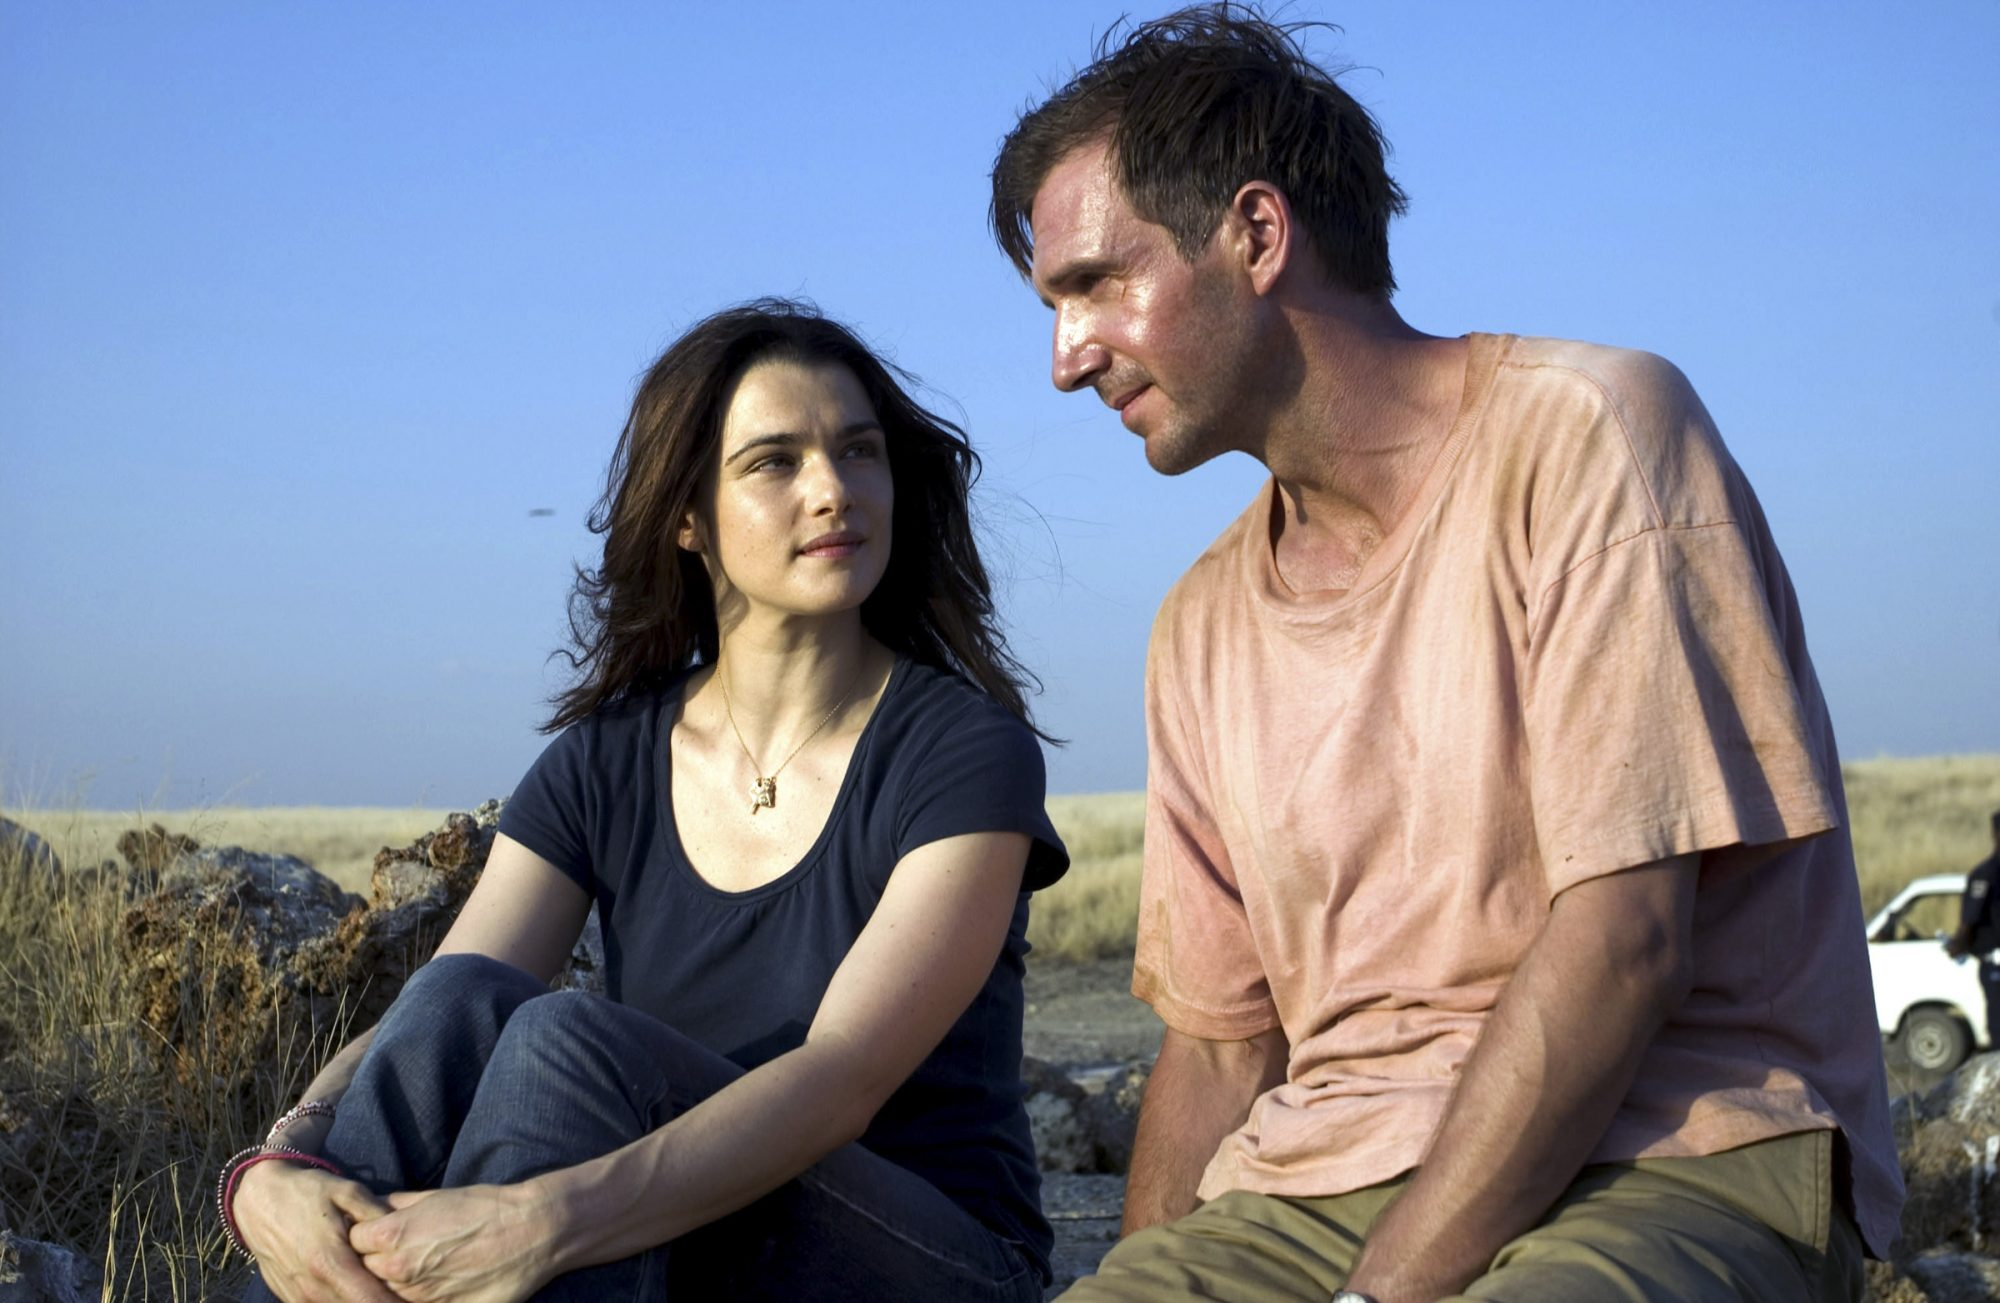 THE CONSTANT GARDENER, Rachel Weisz, Ralph Fiennes, 2005, ©Focus Features / courtesy Everett Collect